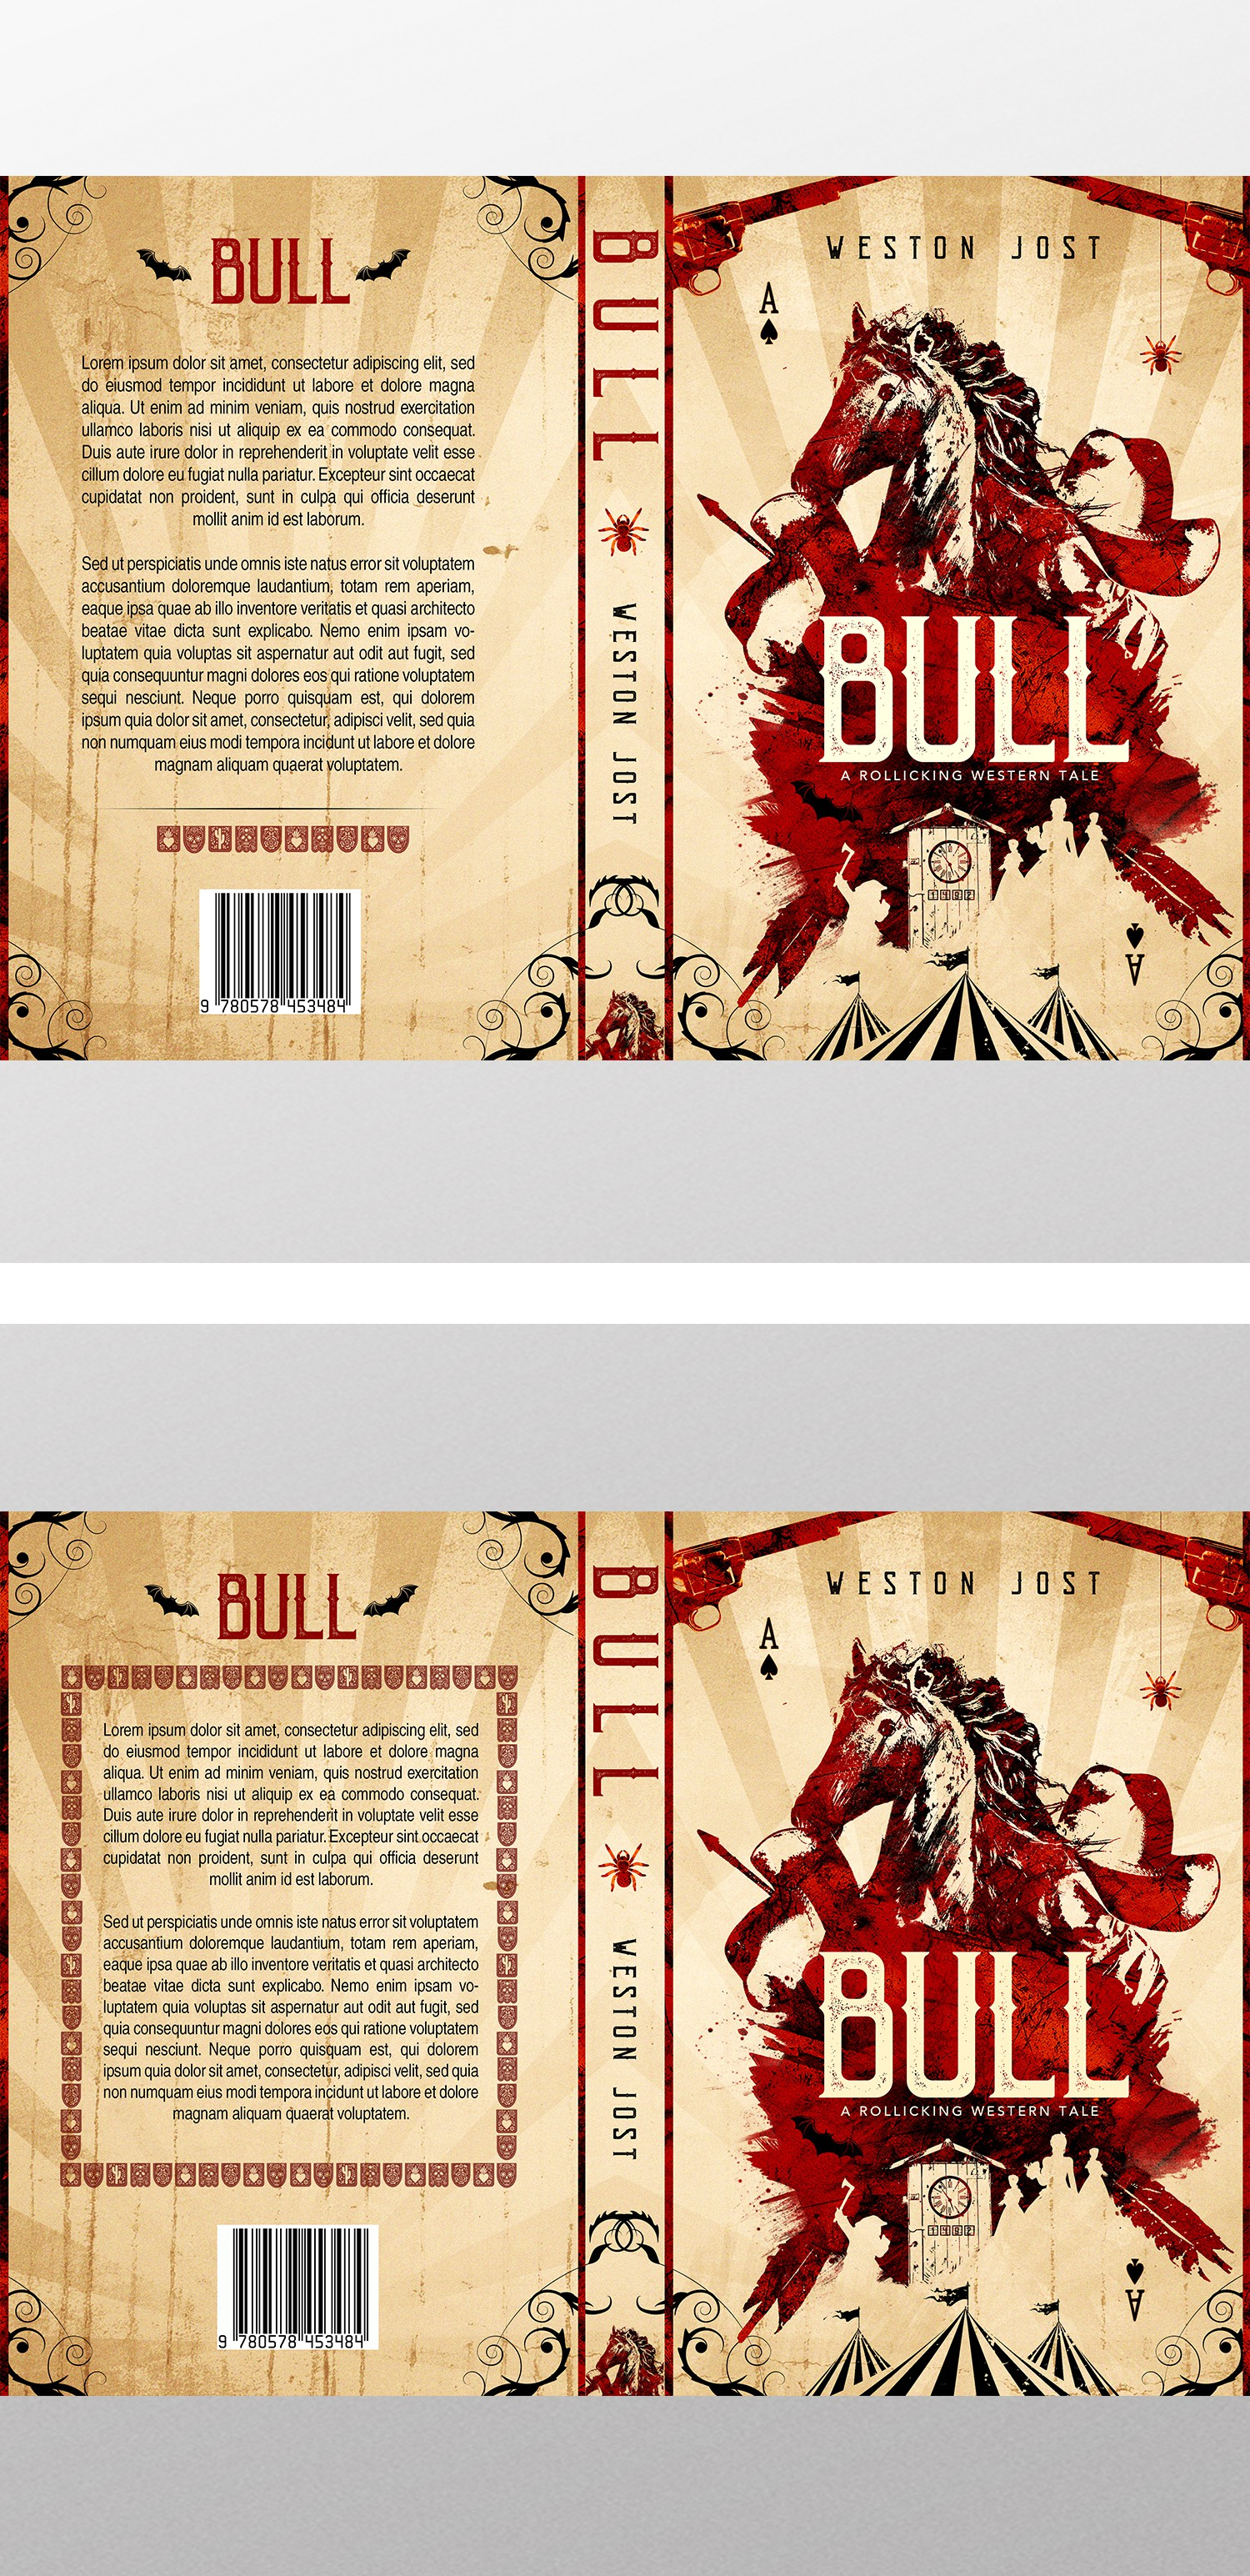 Create a beautiful and intriguing book cover for an unconventional, offbeat, 1870's western novel